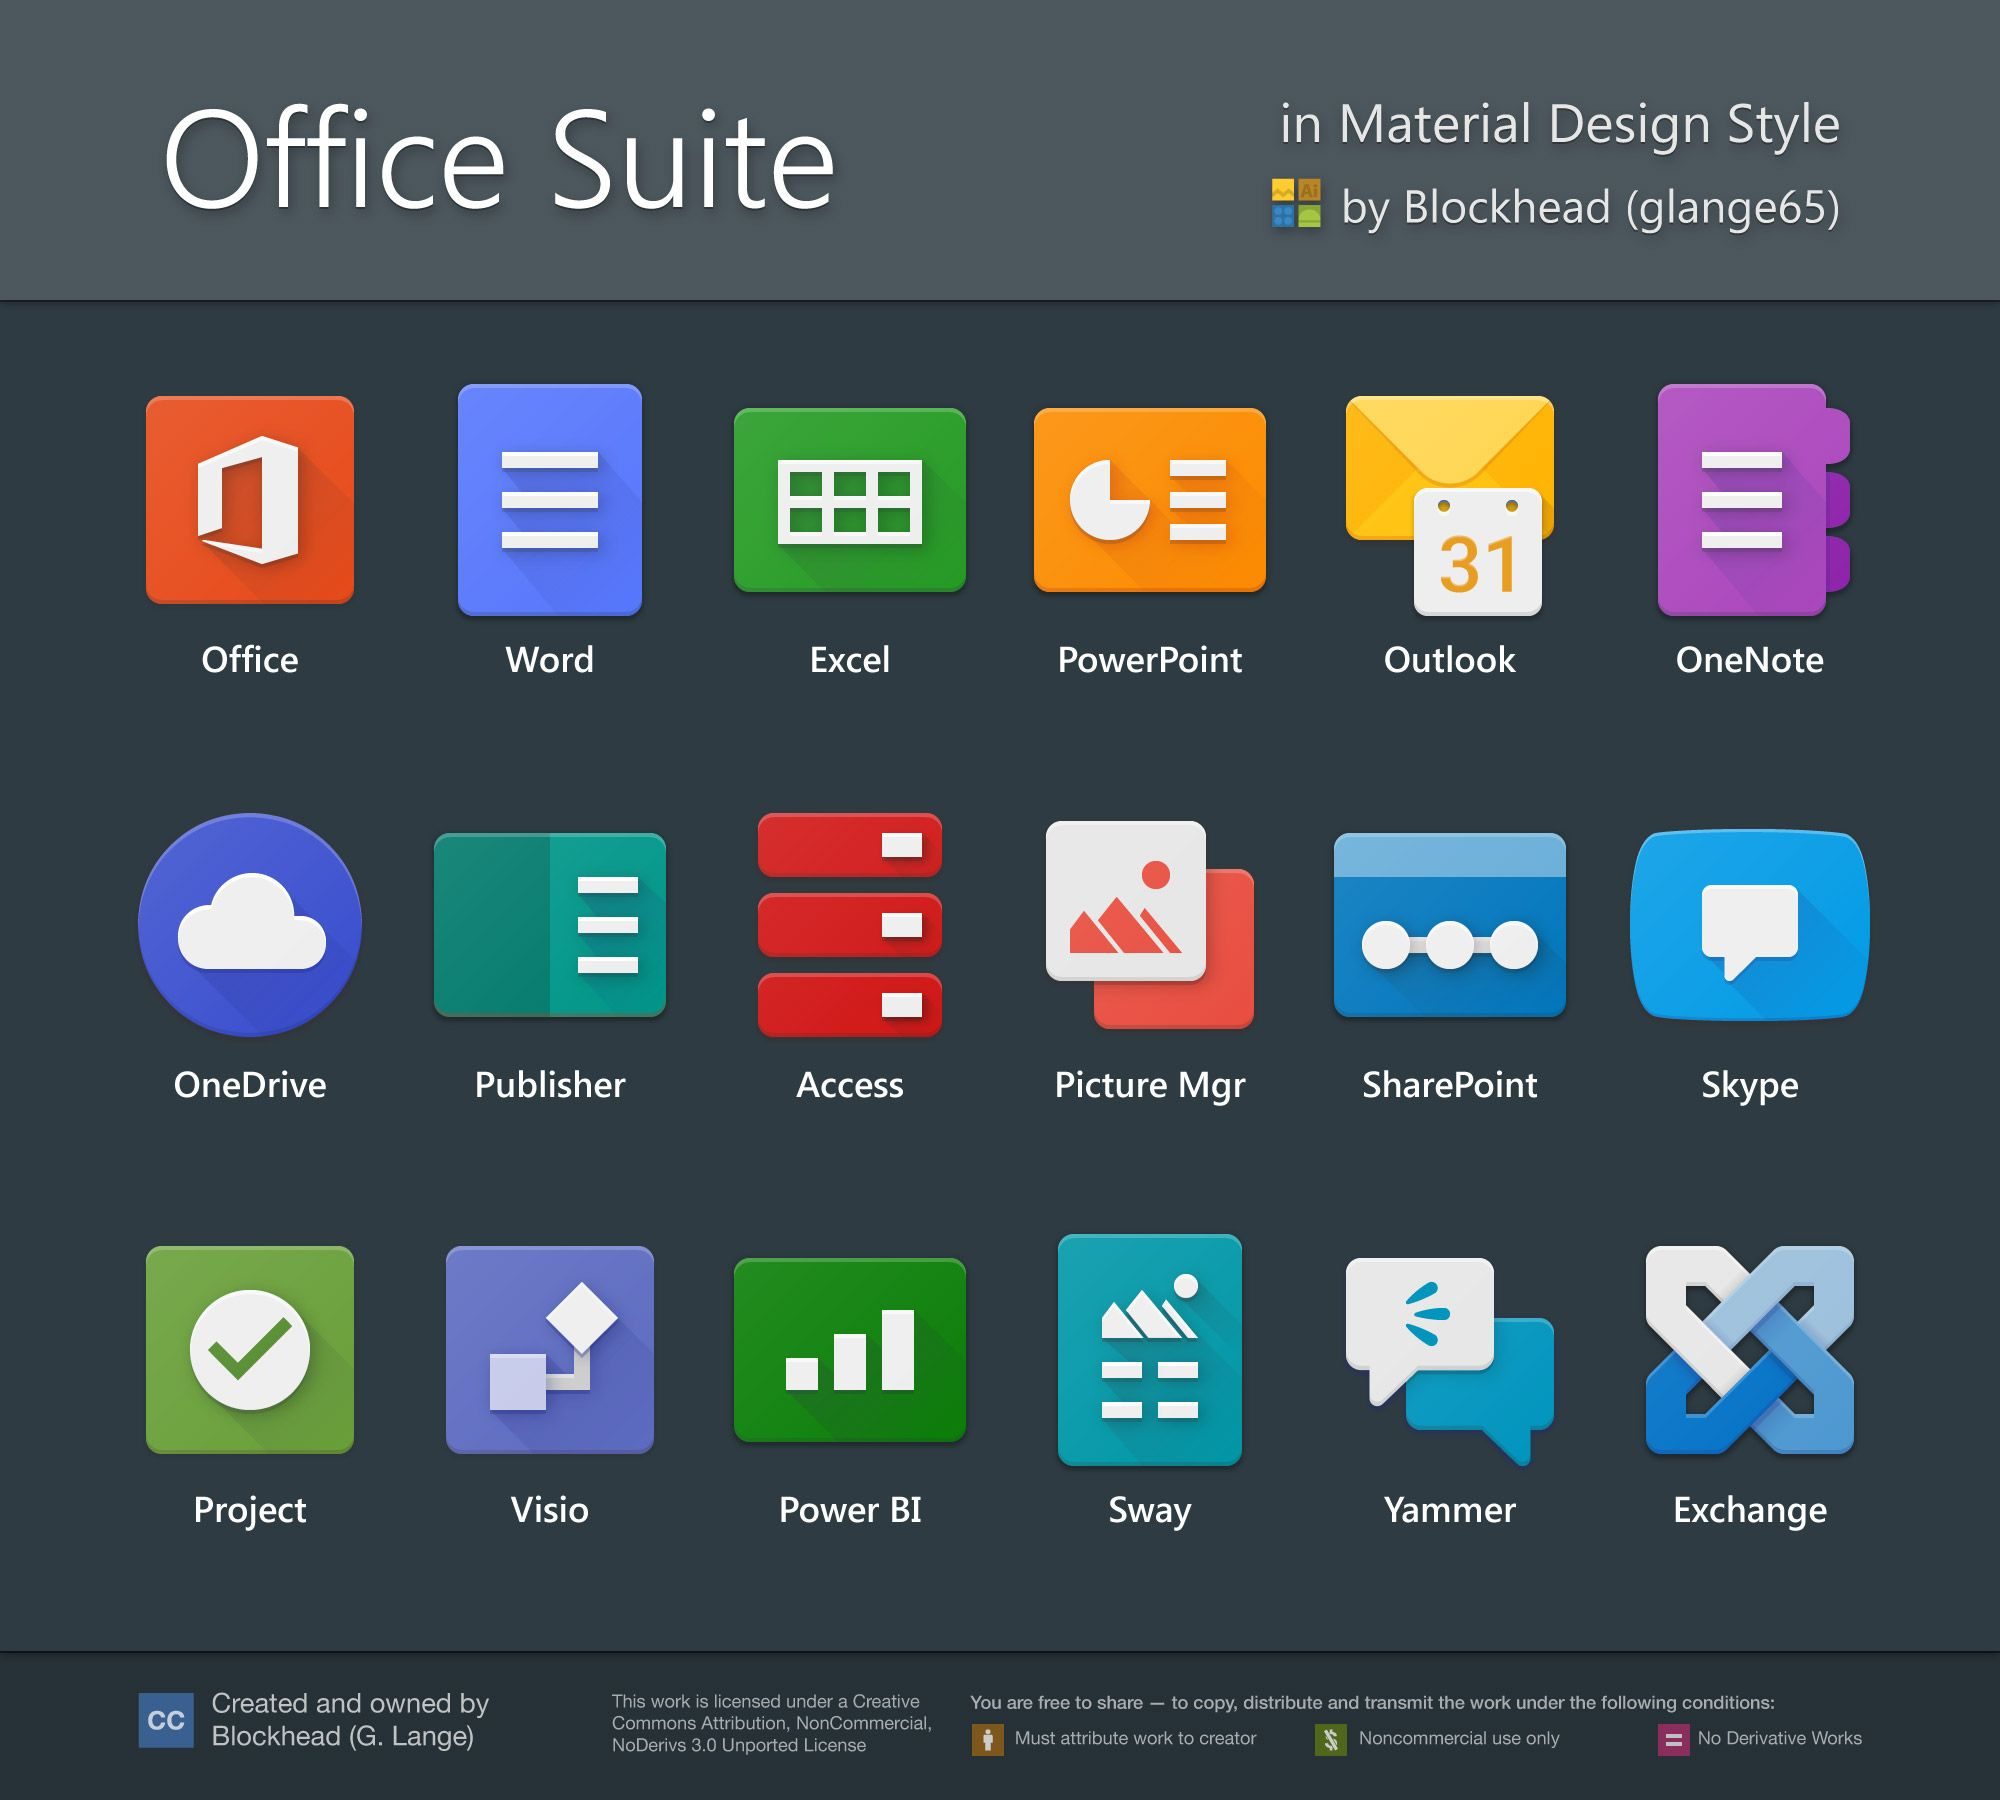 Office Suite in Material Design by glange65 Material